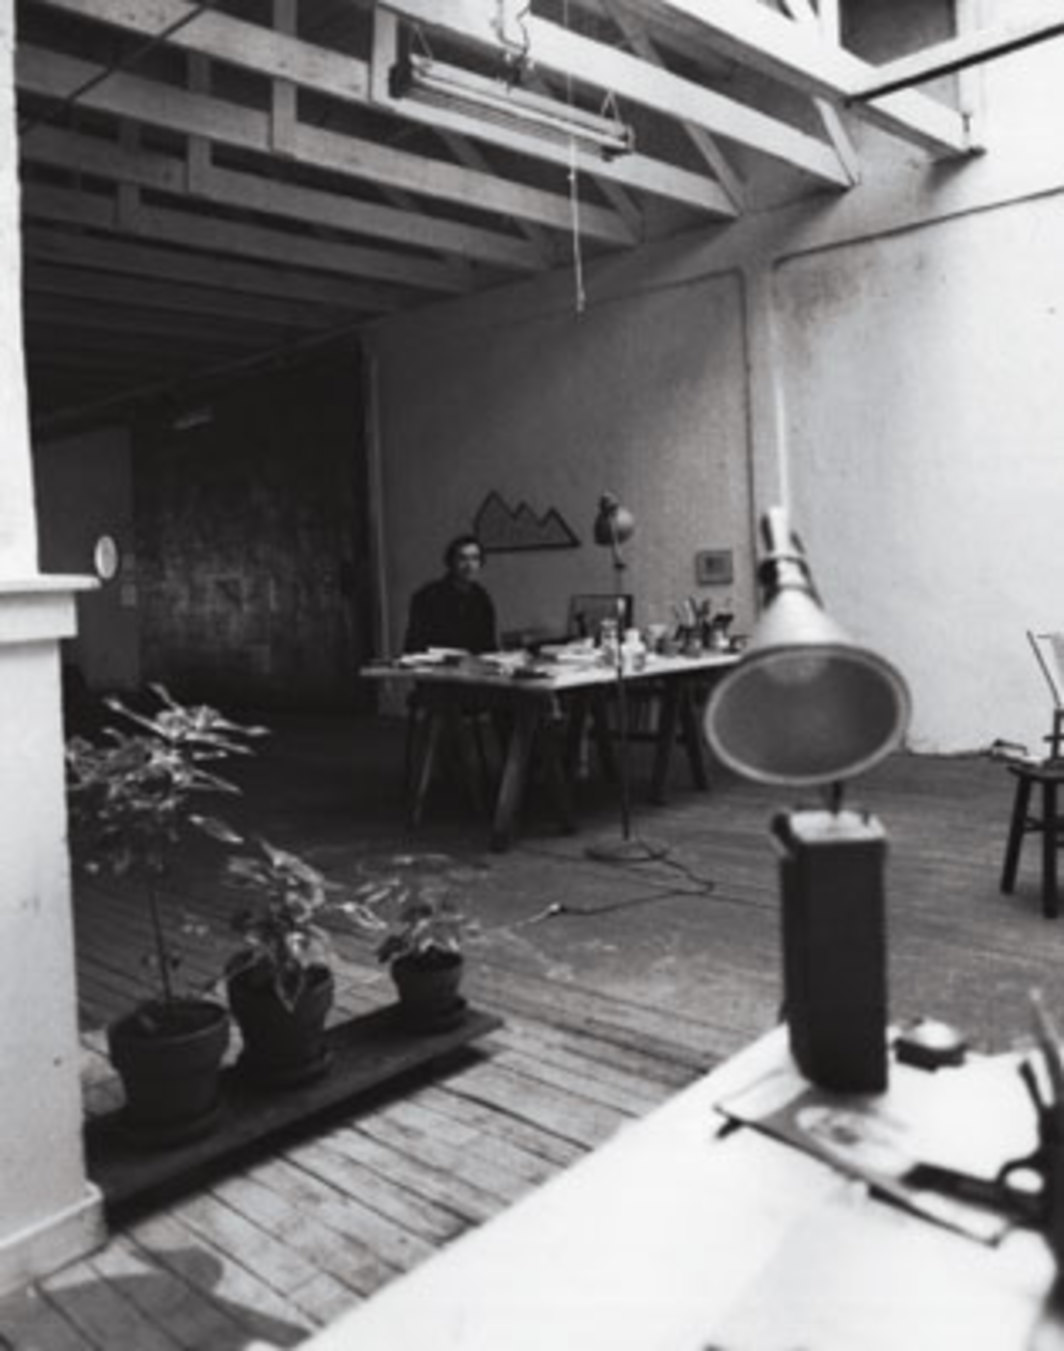 Guy de Cointet in his studio, Venice, CA, ca. 1976. All works by Guy de Cointet © Estate of Guy de Cointet/Air de Paris.